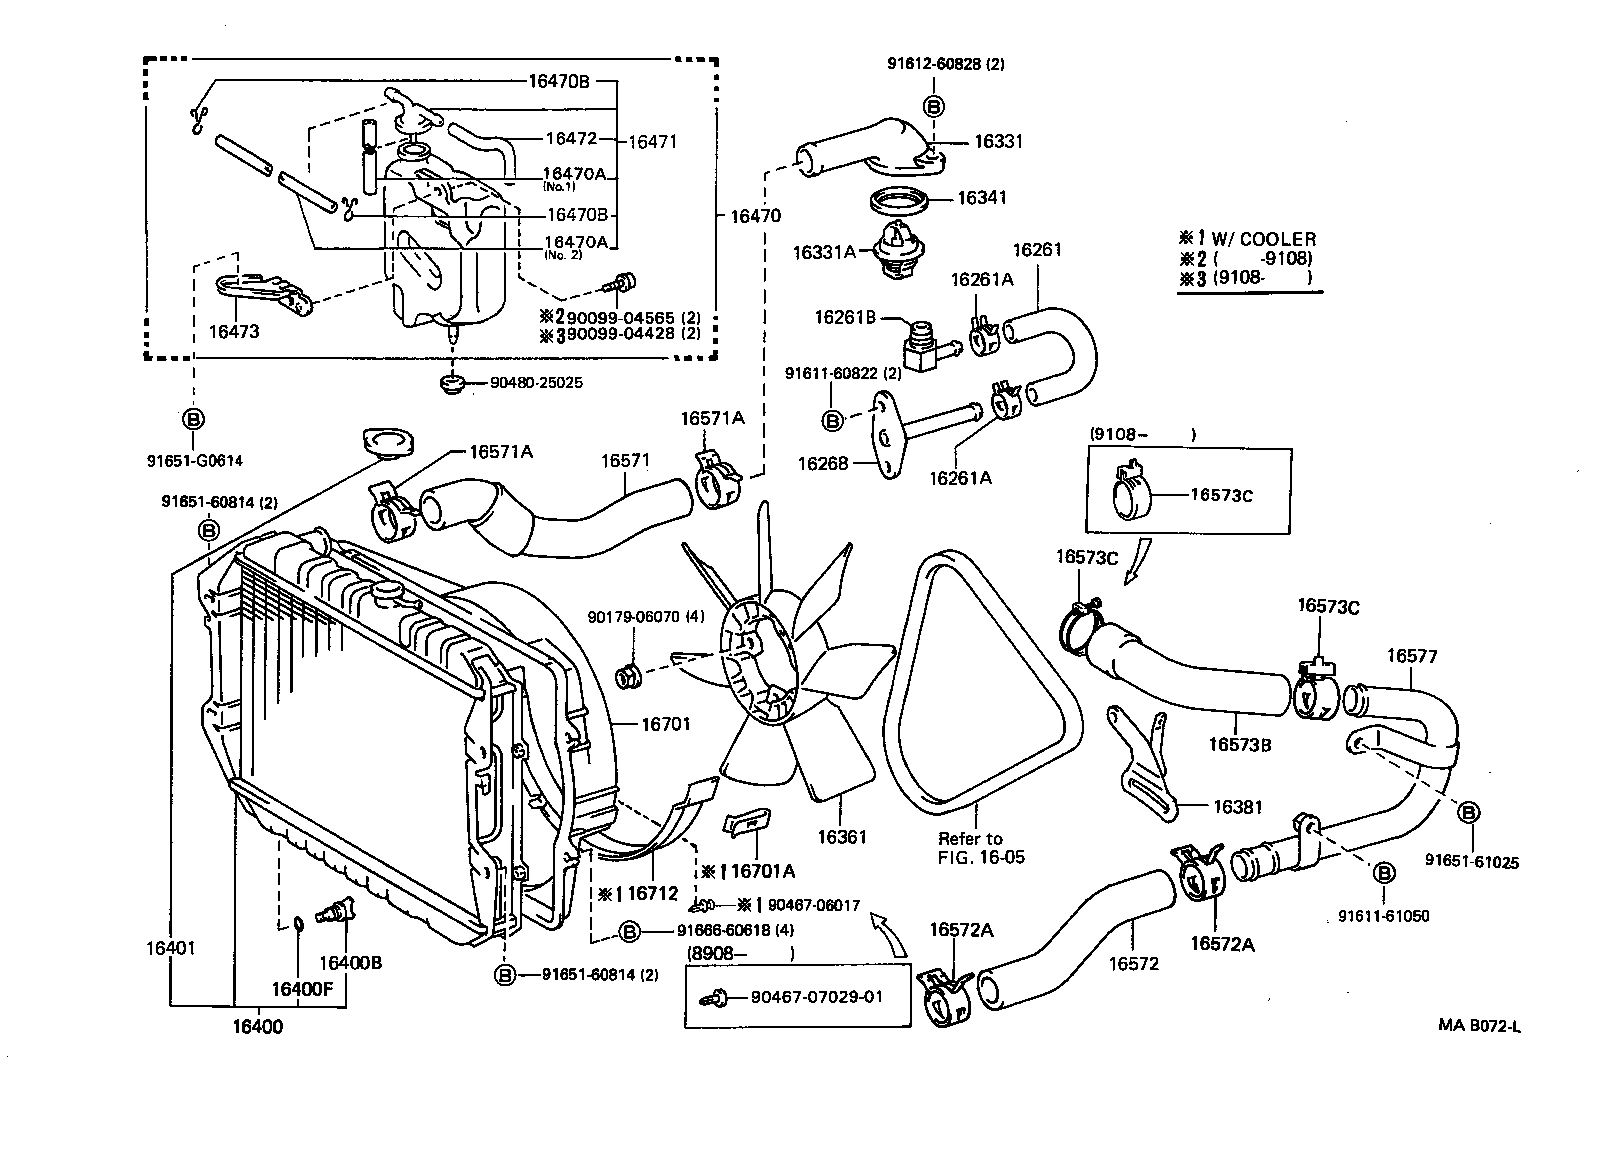 [DIAGRAM] 1990 Toyota Pickup 22re Engine Wiring Diagram